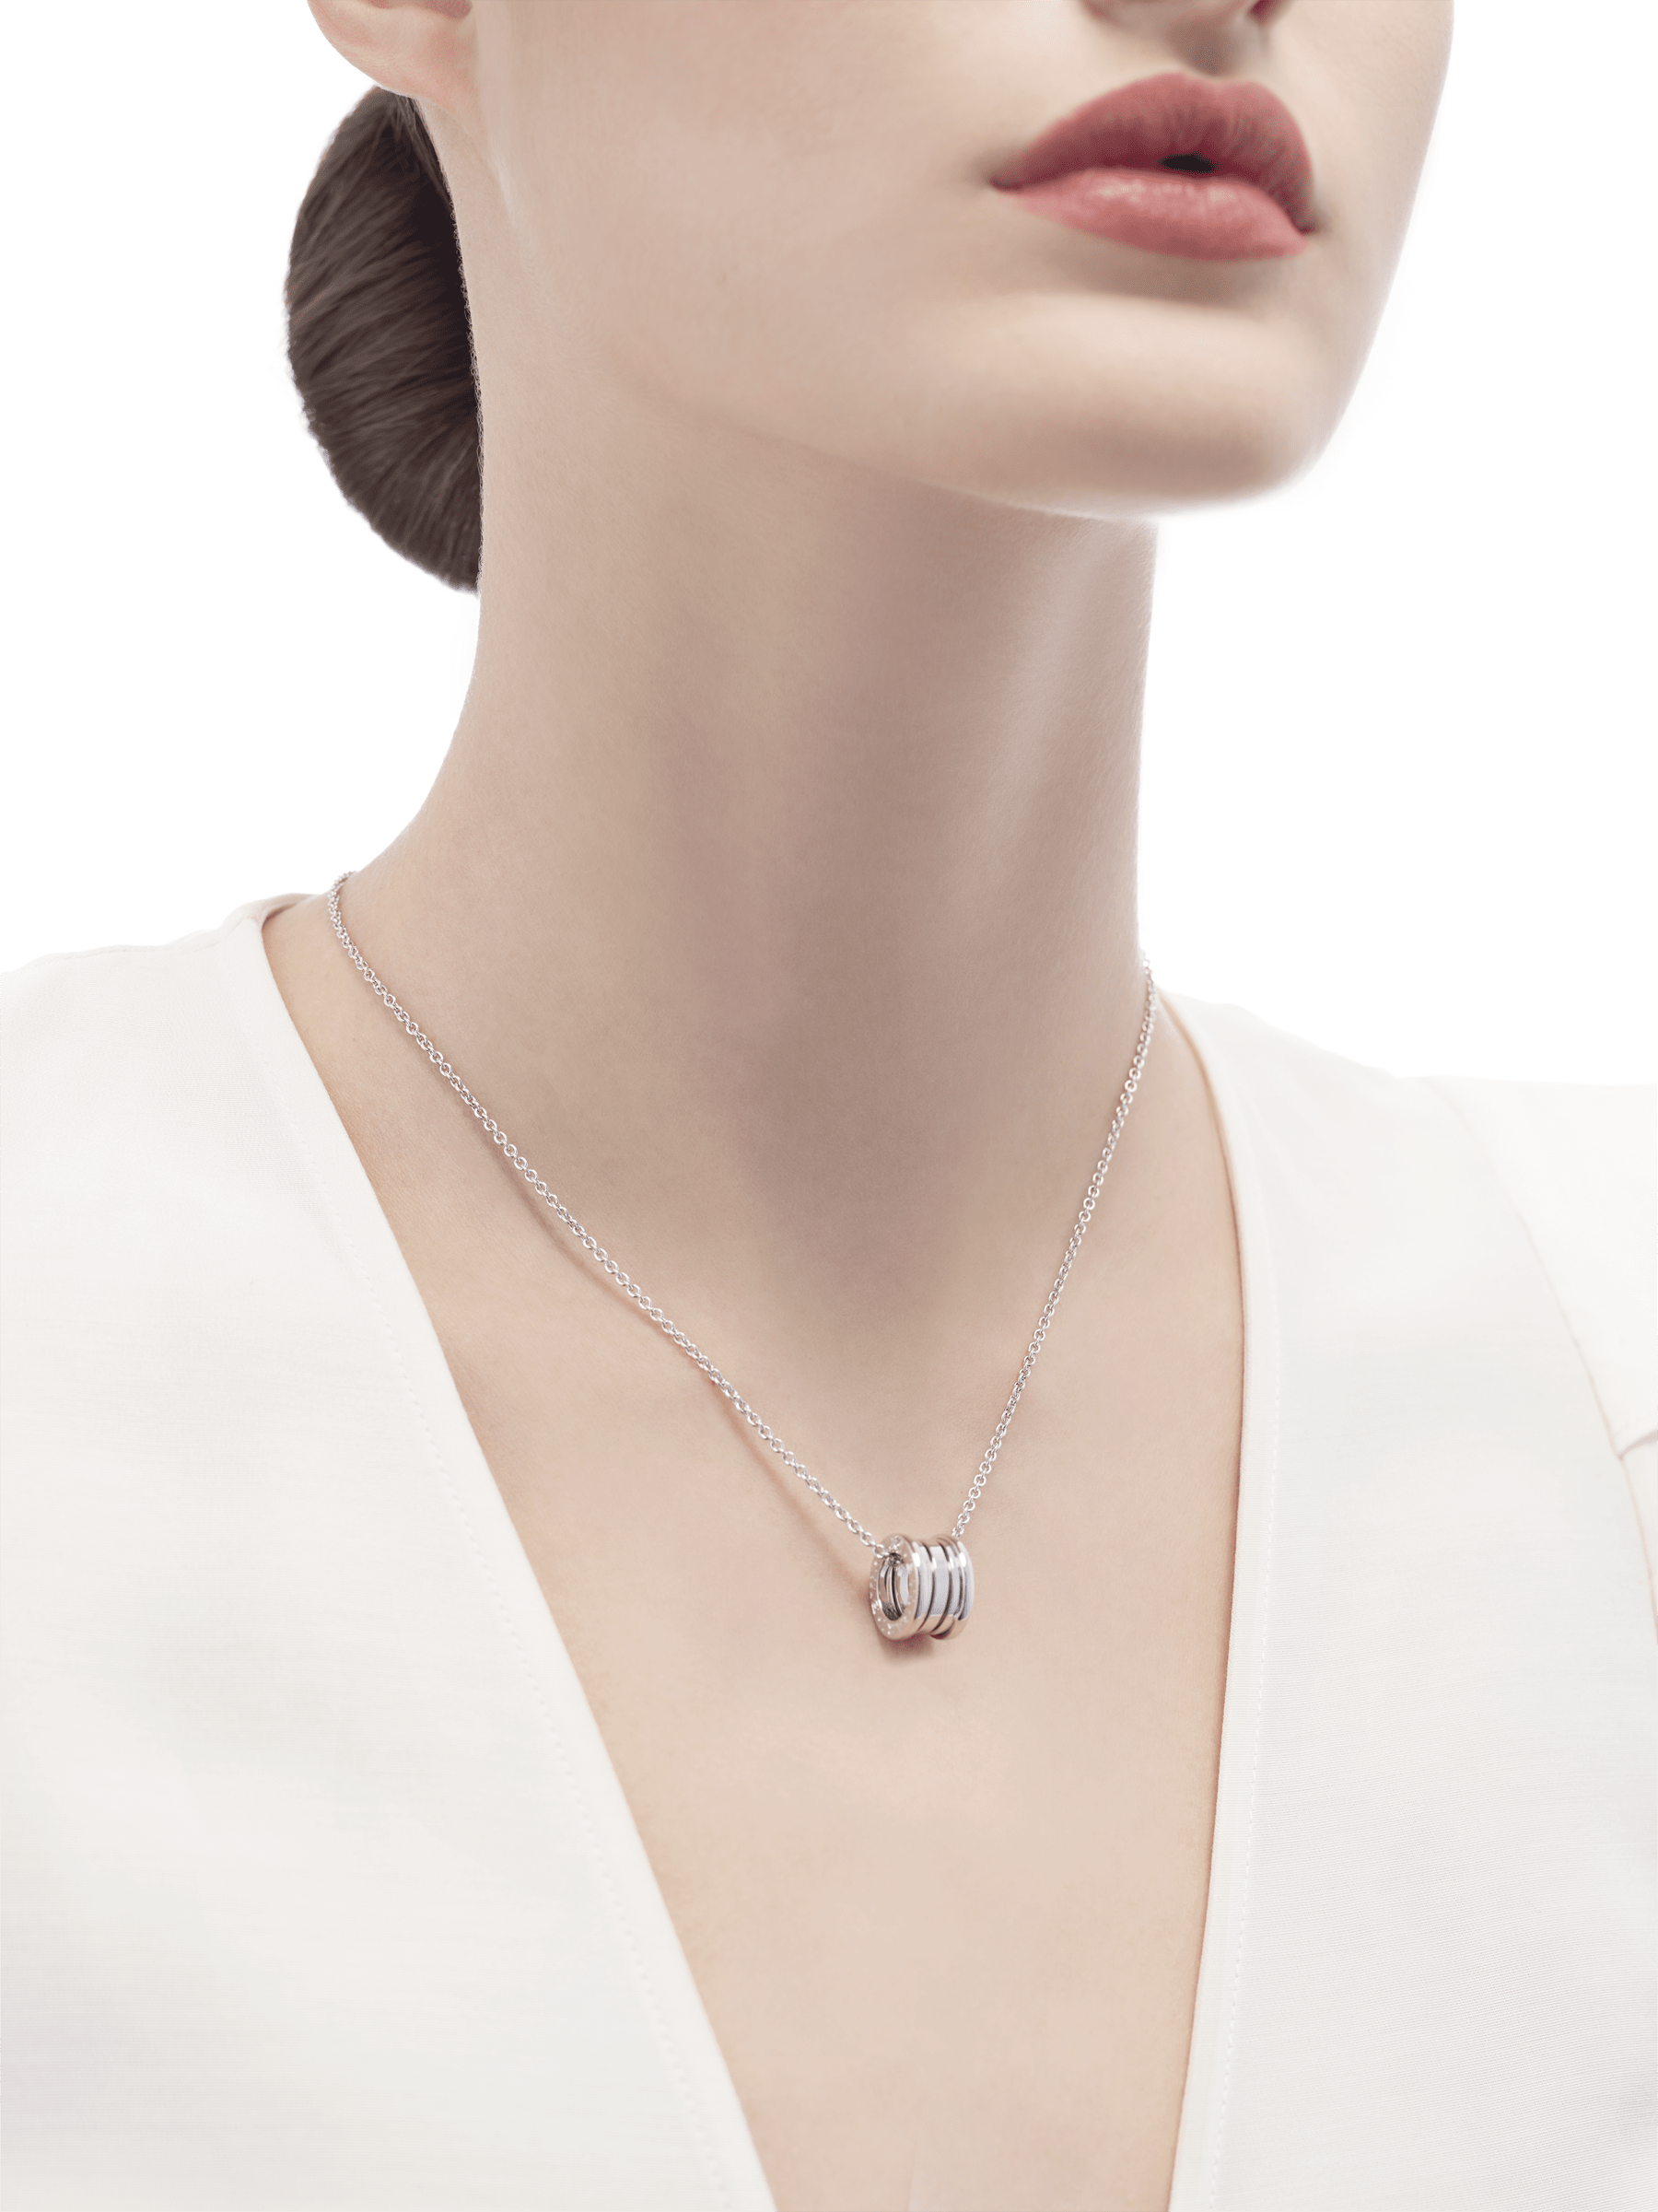 B.zero1 necklace with small round pendant, both in 18kt white gold. 352815 image 4